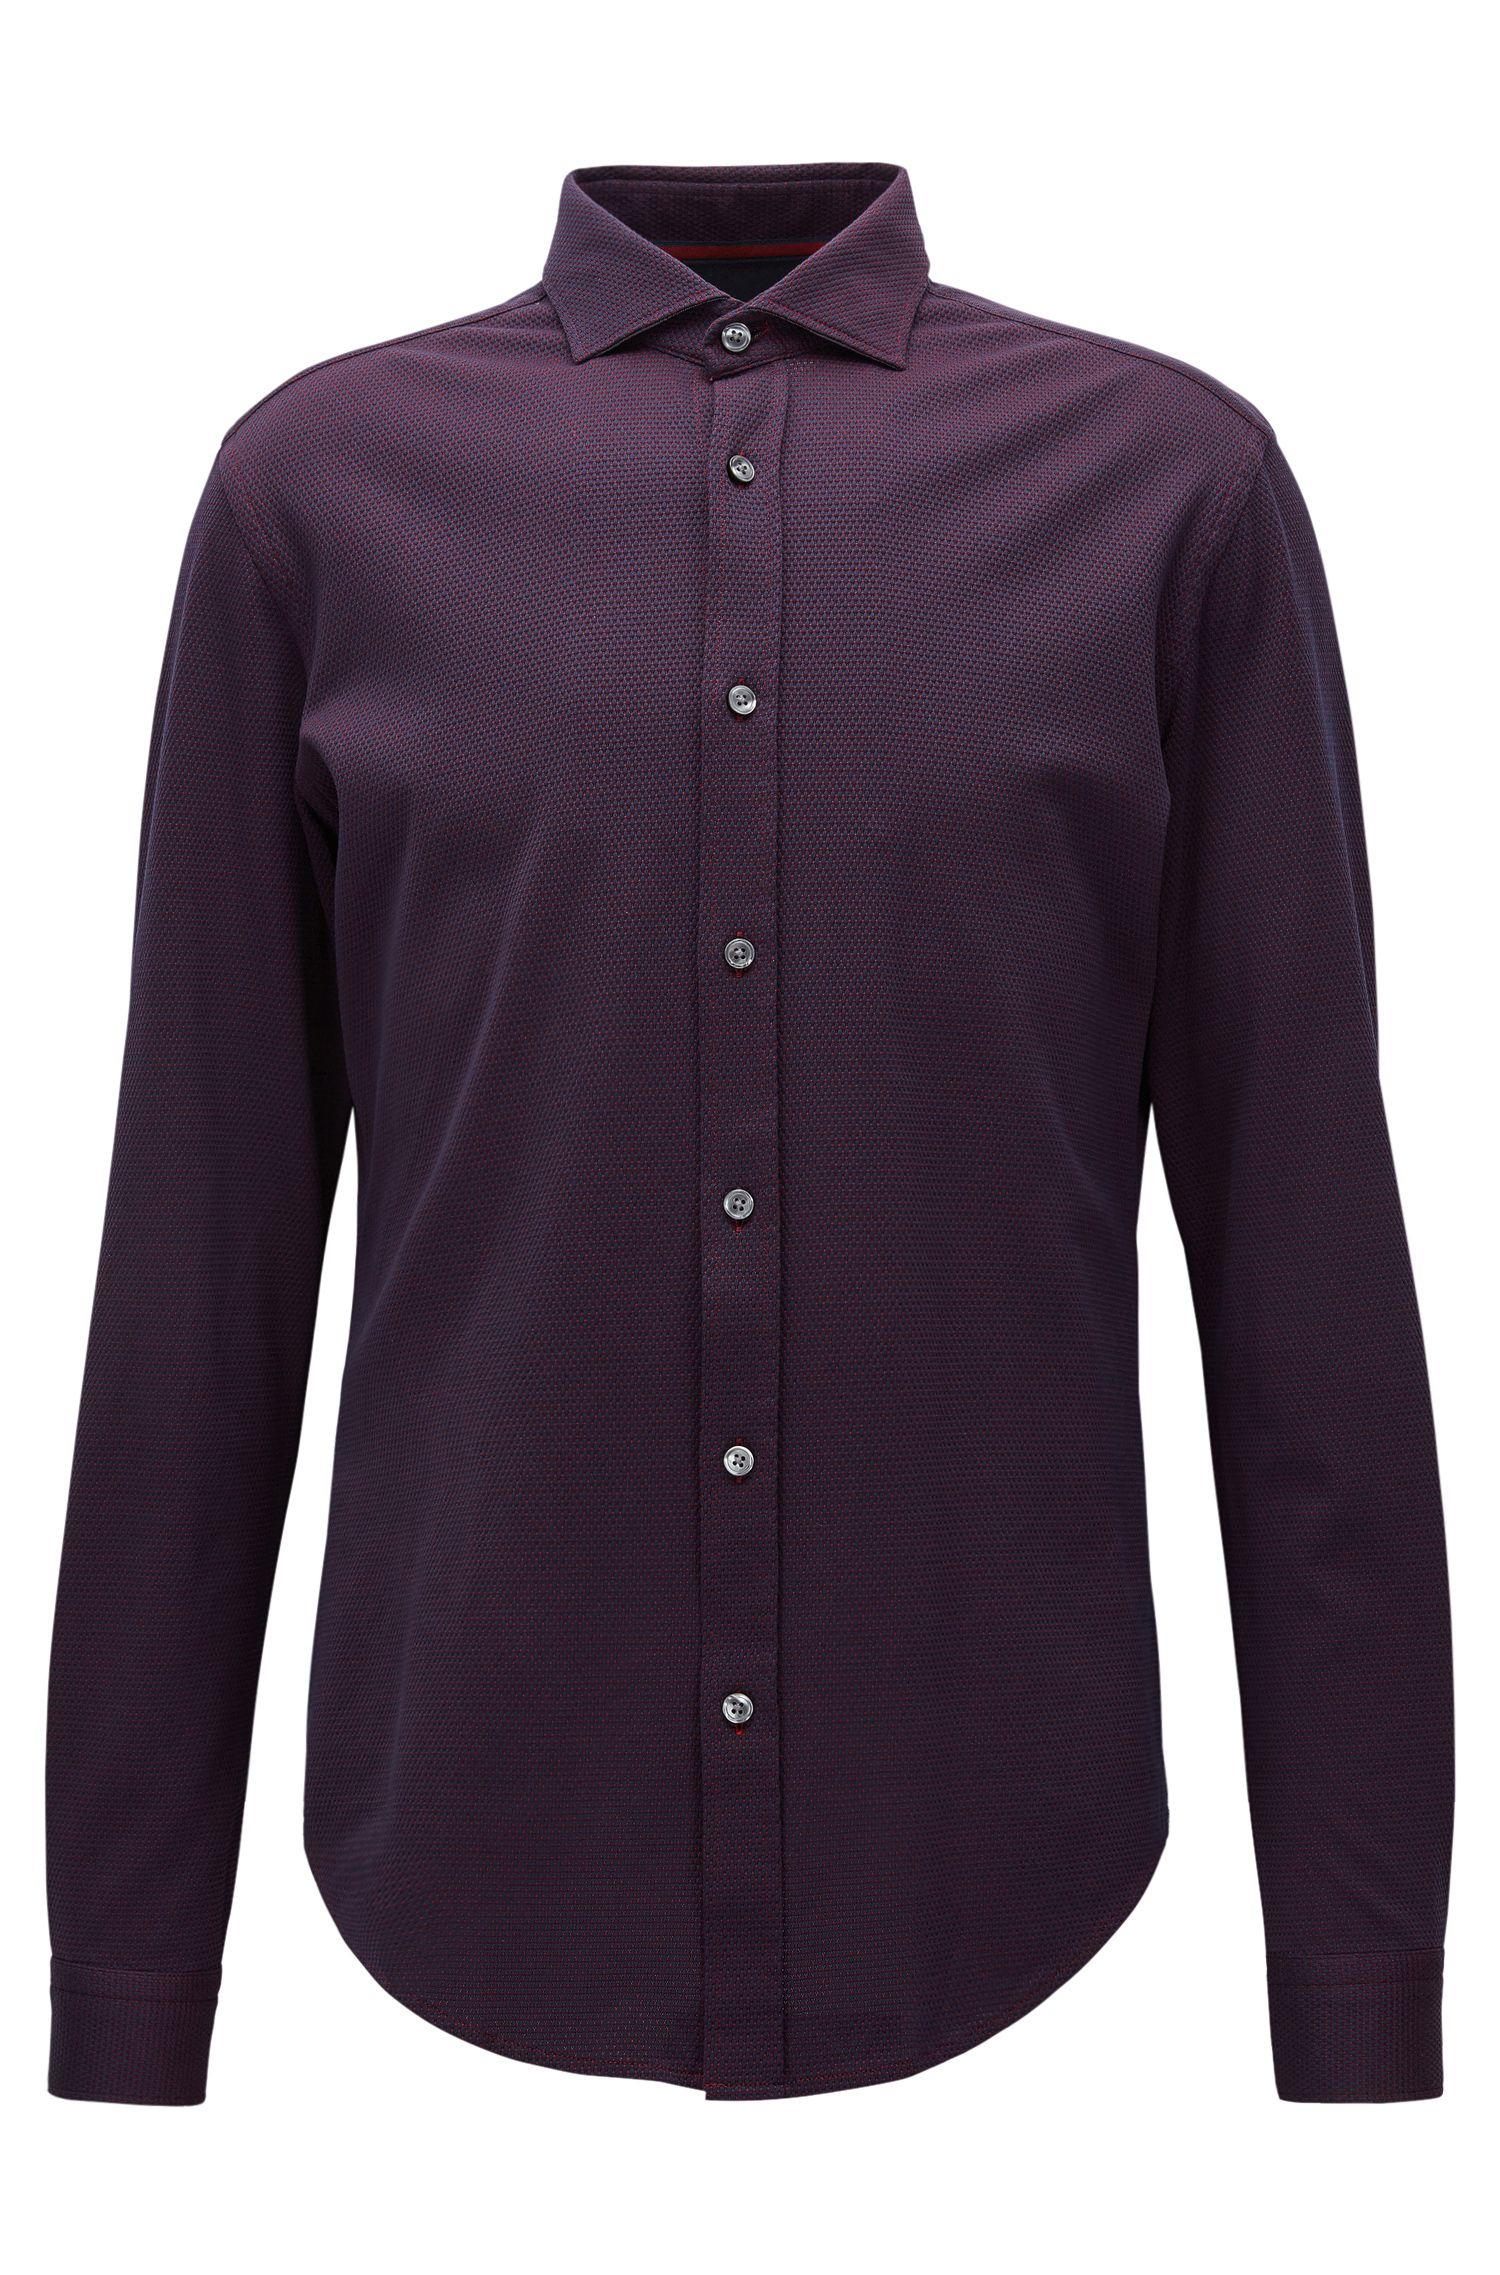 Slim-fit shirt in textured jersey